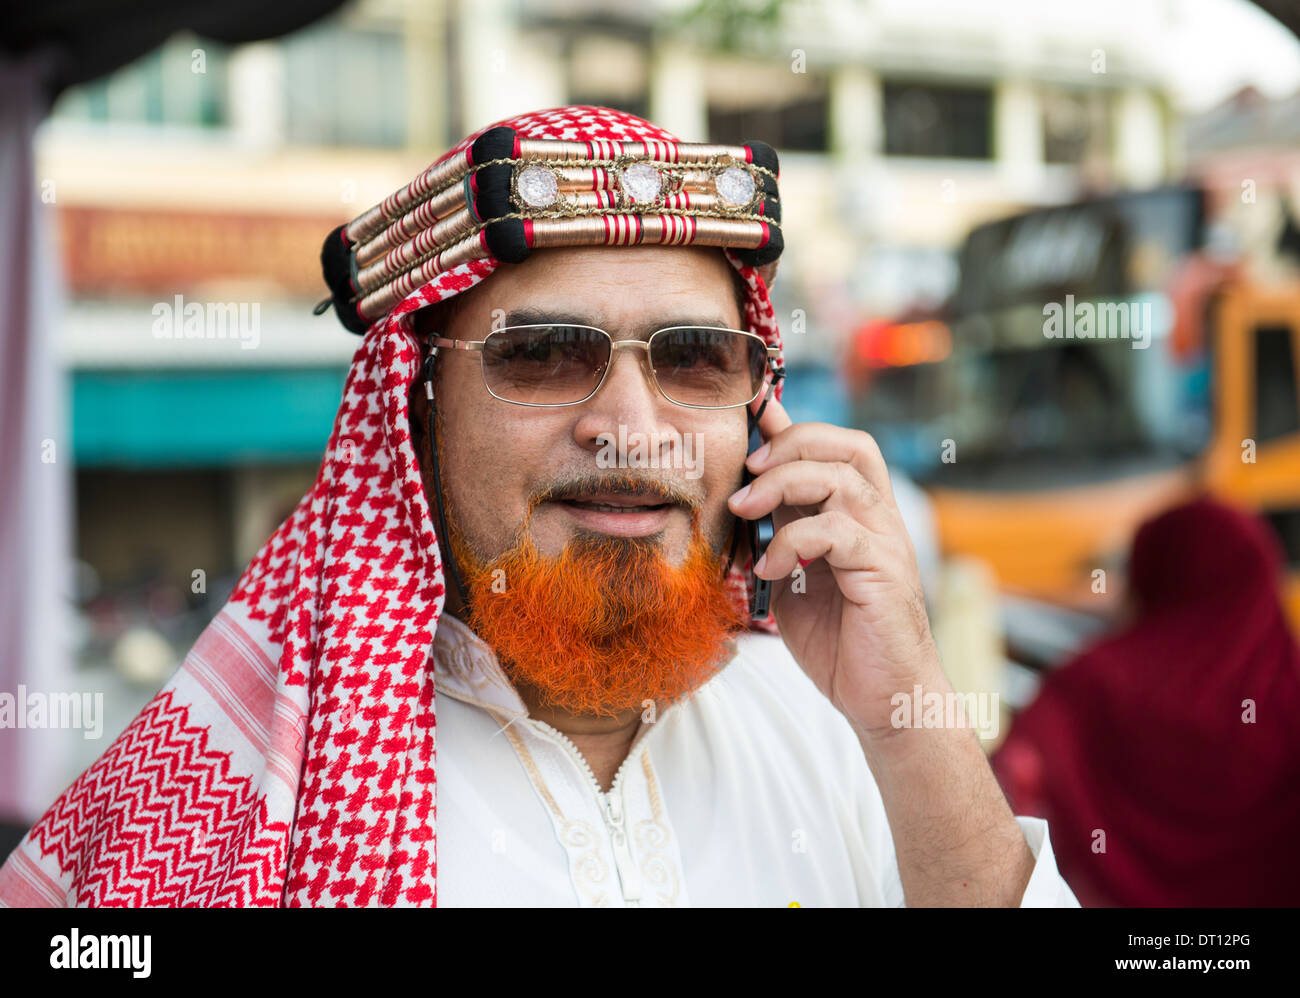 A Handsome Arab Sheik using his mobile phone. - Stock Image